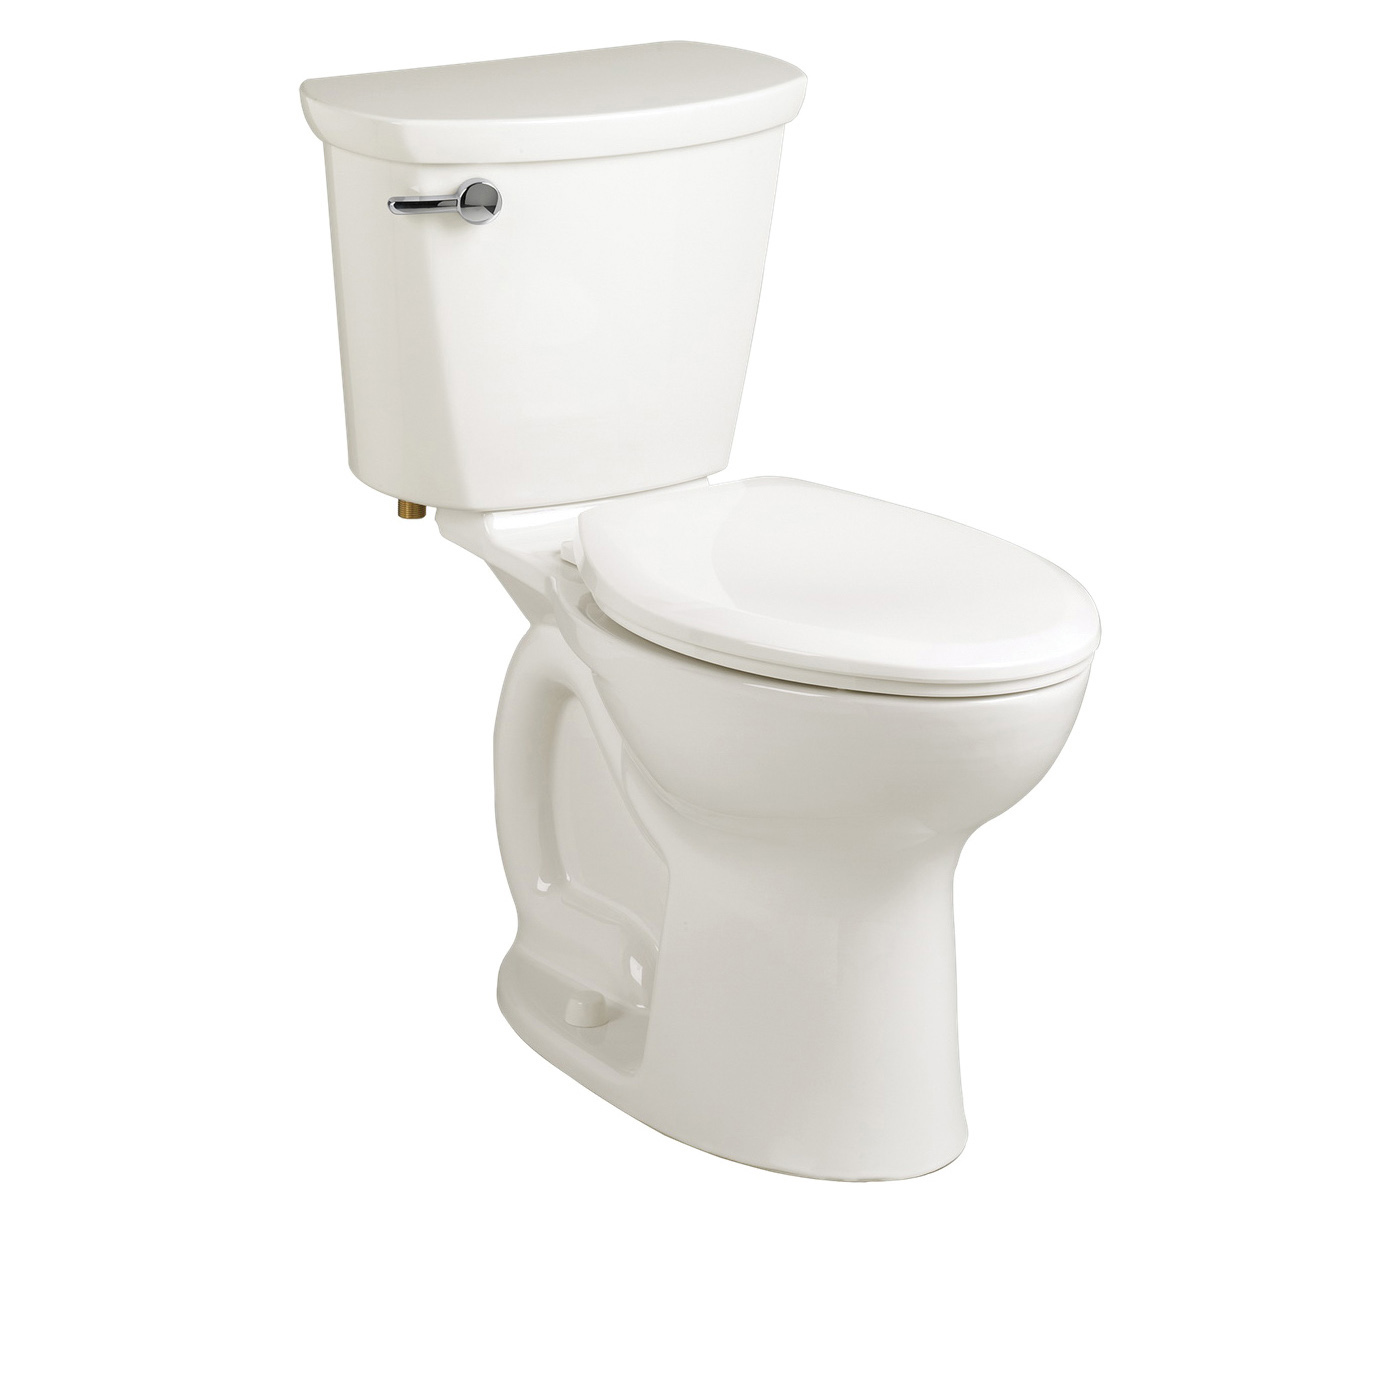 American Standard 215AA104.020 Cadet® Pro™ Right Height™ 2-Piece Toilet, Elongated Bowl, 16-1/2 in H Rim, 12 in Rough-In, 1.28 gpf Flush Rate, White, Import